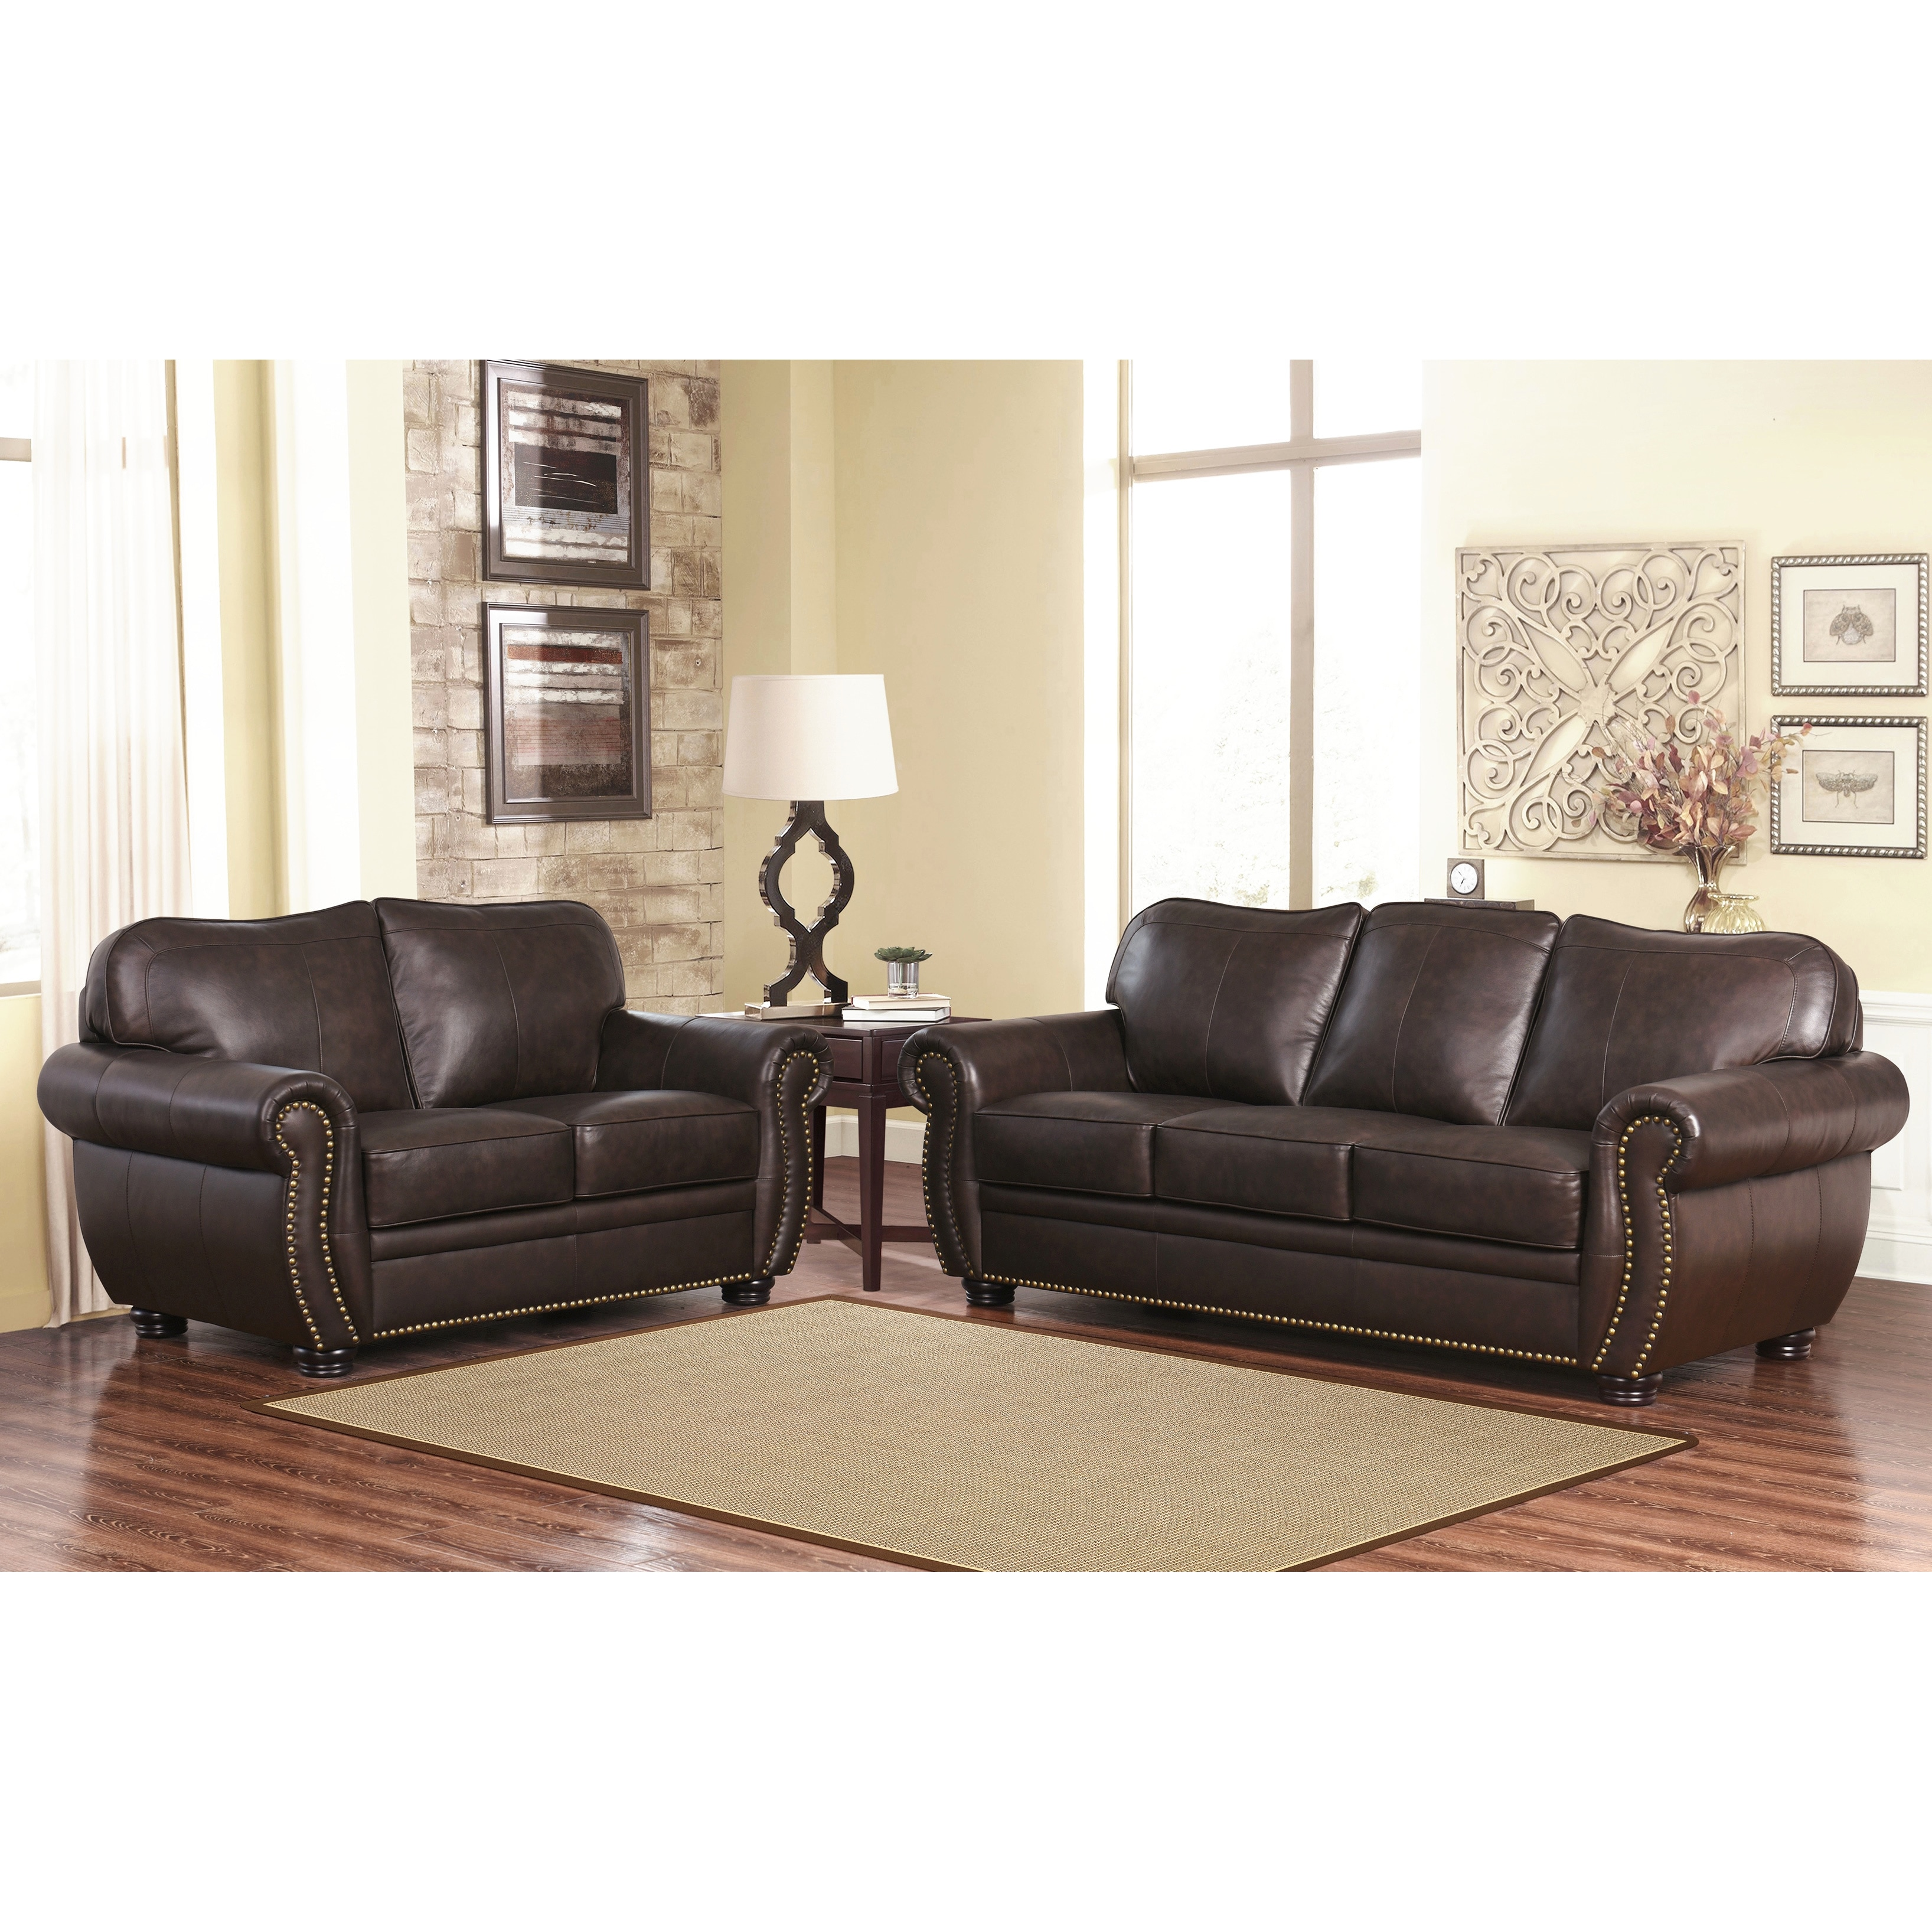 Abbyson Living Leather Sofa Abbyson Living Erickson Leather Sofa In Camel Brown Sk 28110 Cng 3